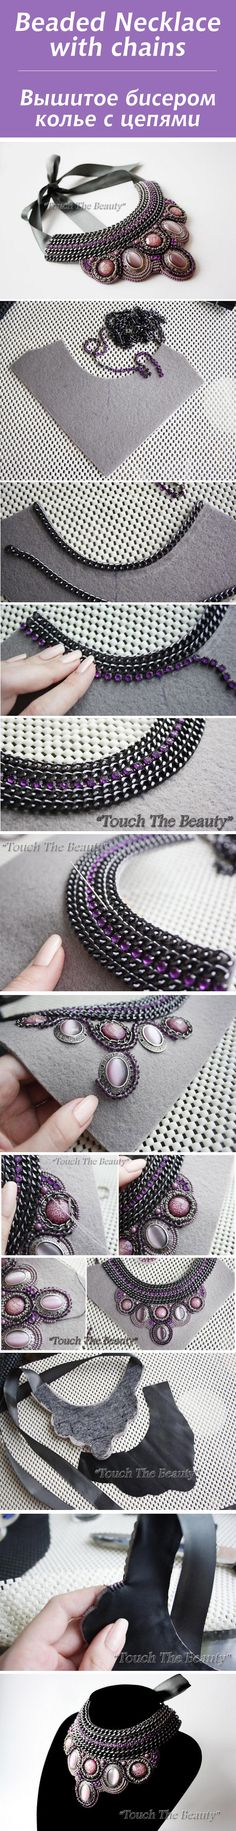 - Вышитое бисером колье с цепями / Beaded Necklace with chains Collier de perles avec chaînes # perle # tutoriel Diy Earrings, Diy Necklace, Necklace Ideas, Amethyst Earrings, Diy Bracelet, Fabric Earrings, Cluster Necklace, Necklace Charm, Beaded Jewelry